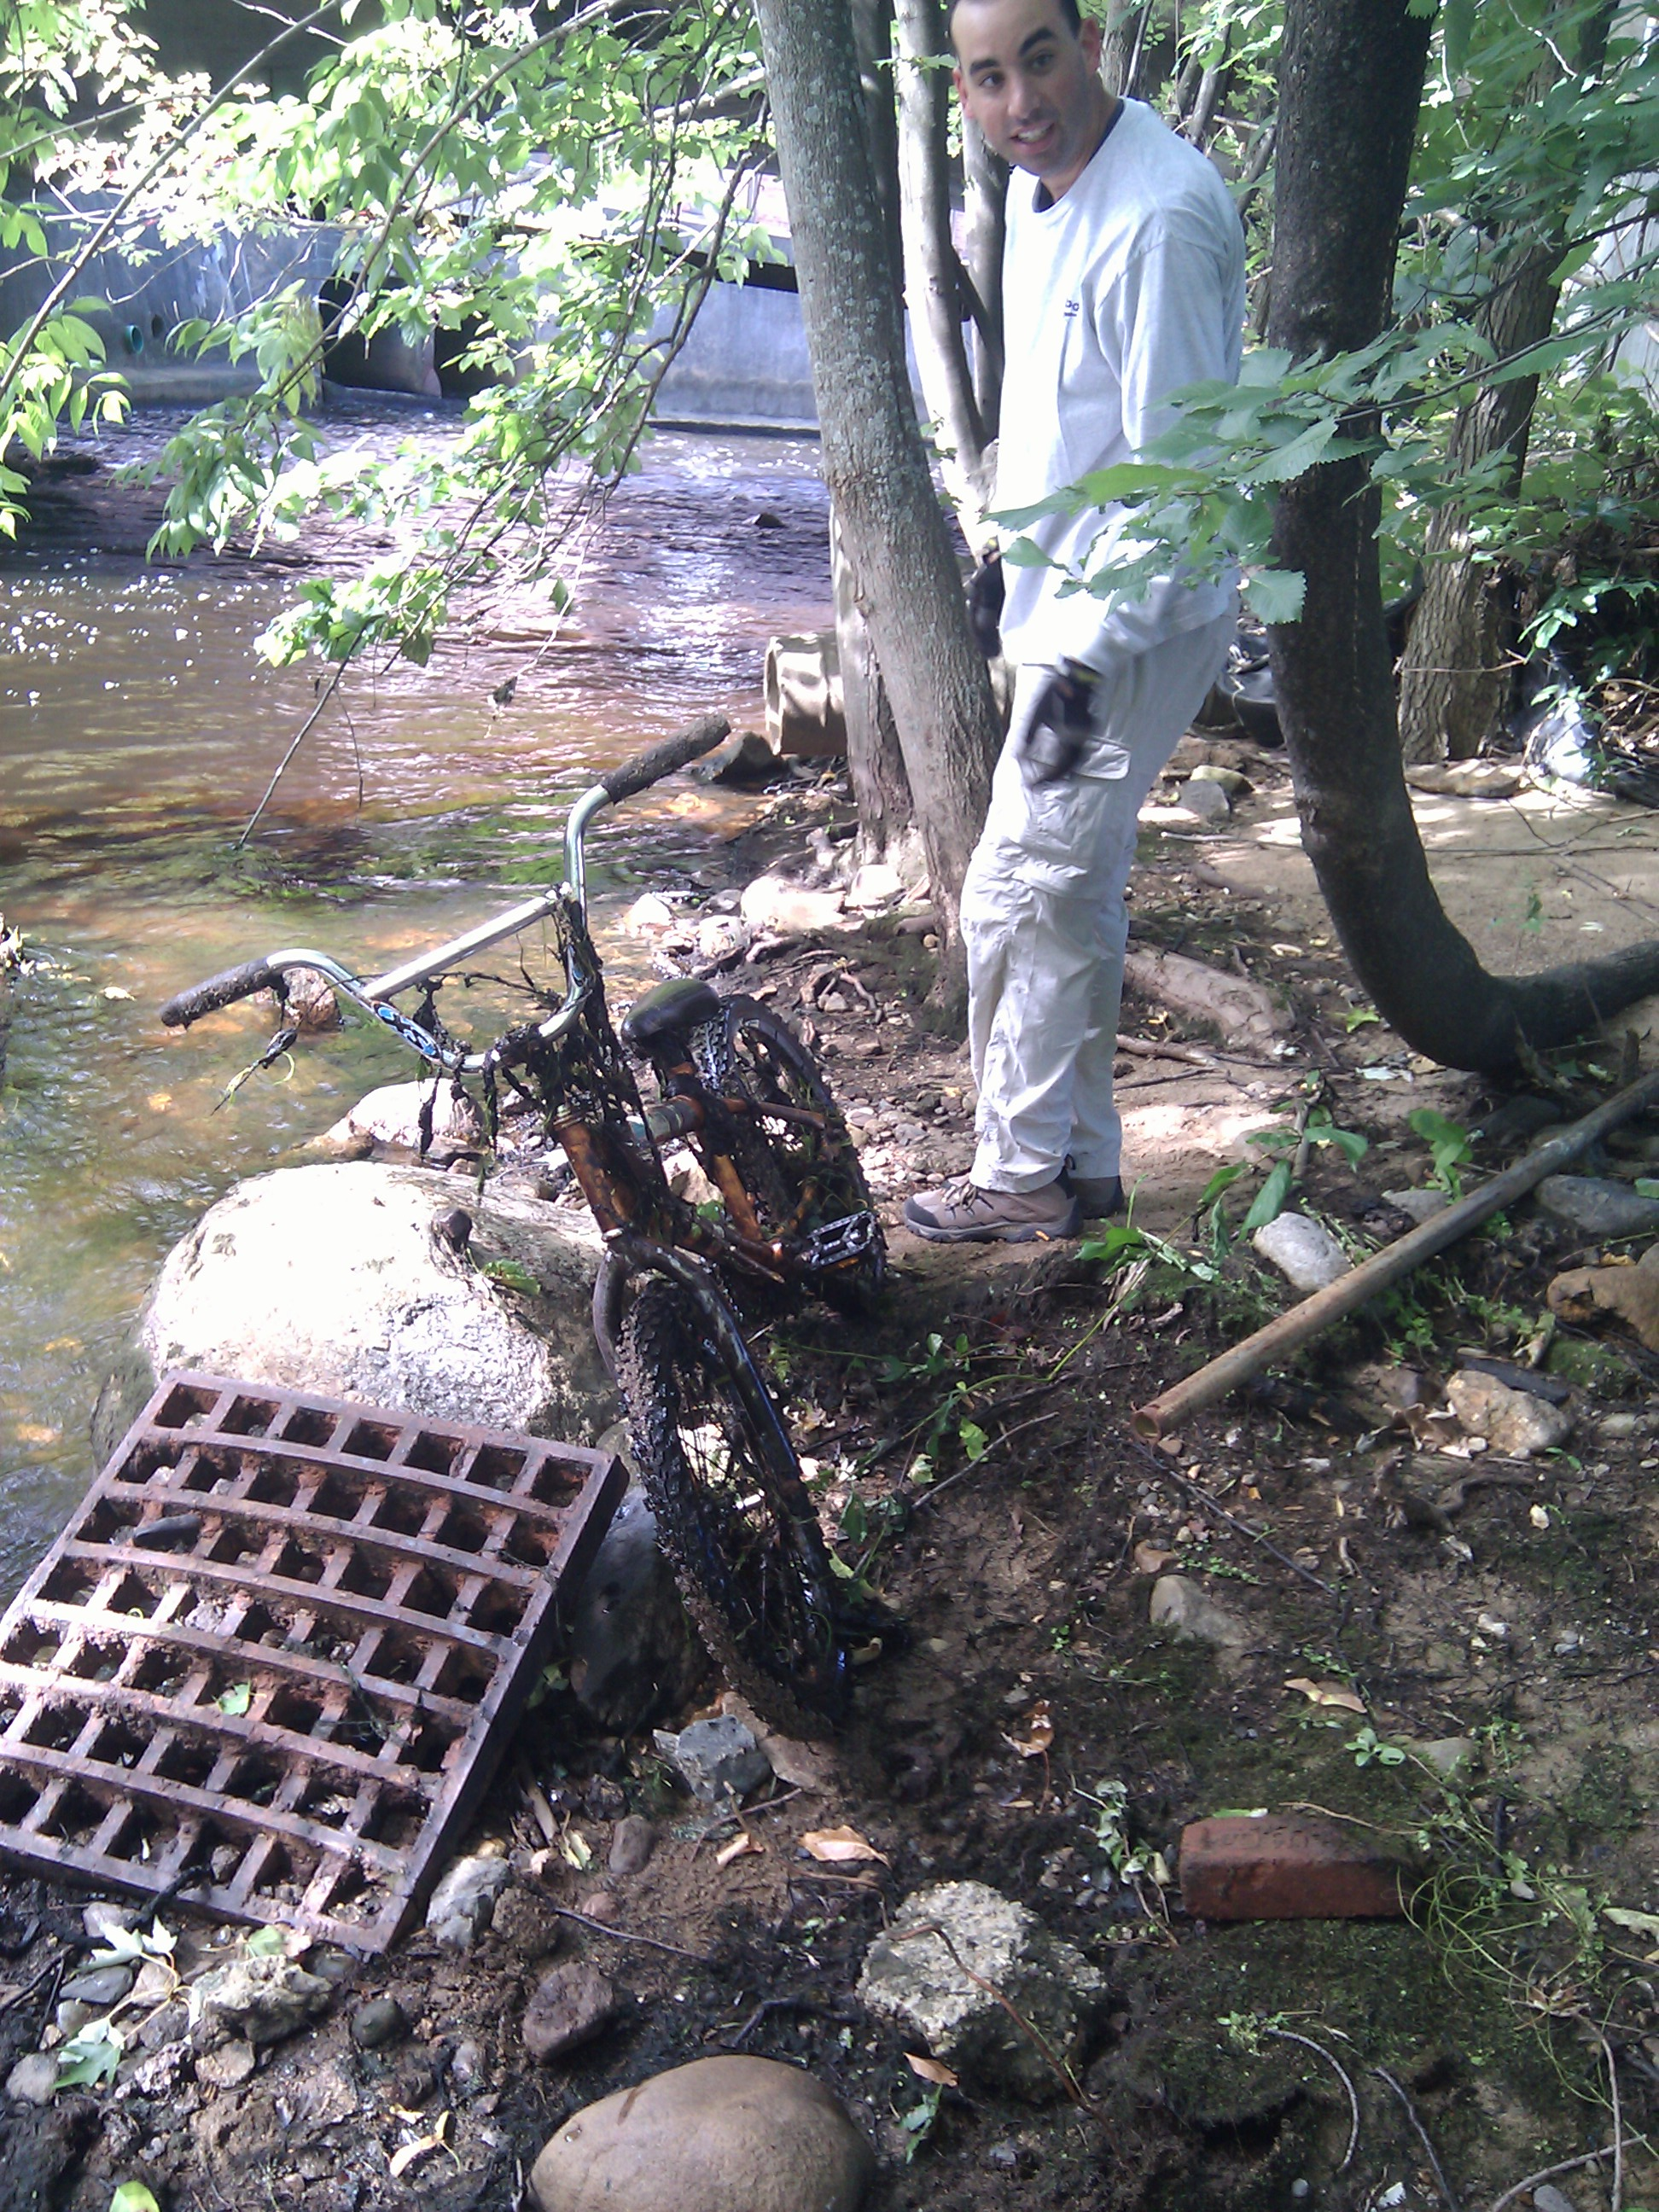 Assabet River cleanup: The bike's finder hauls it out.